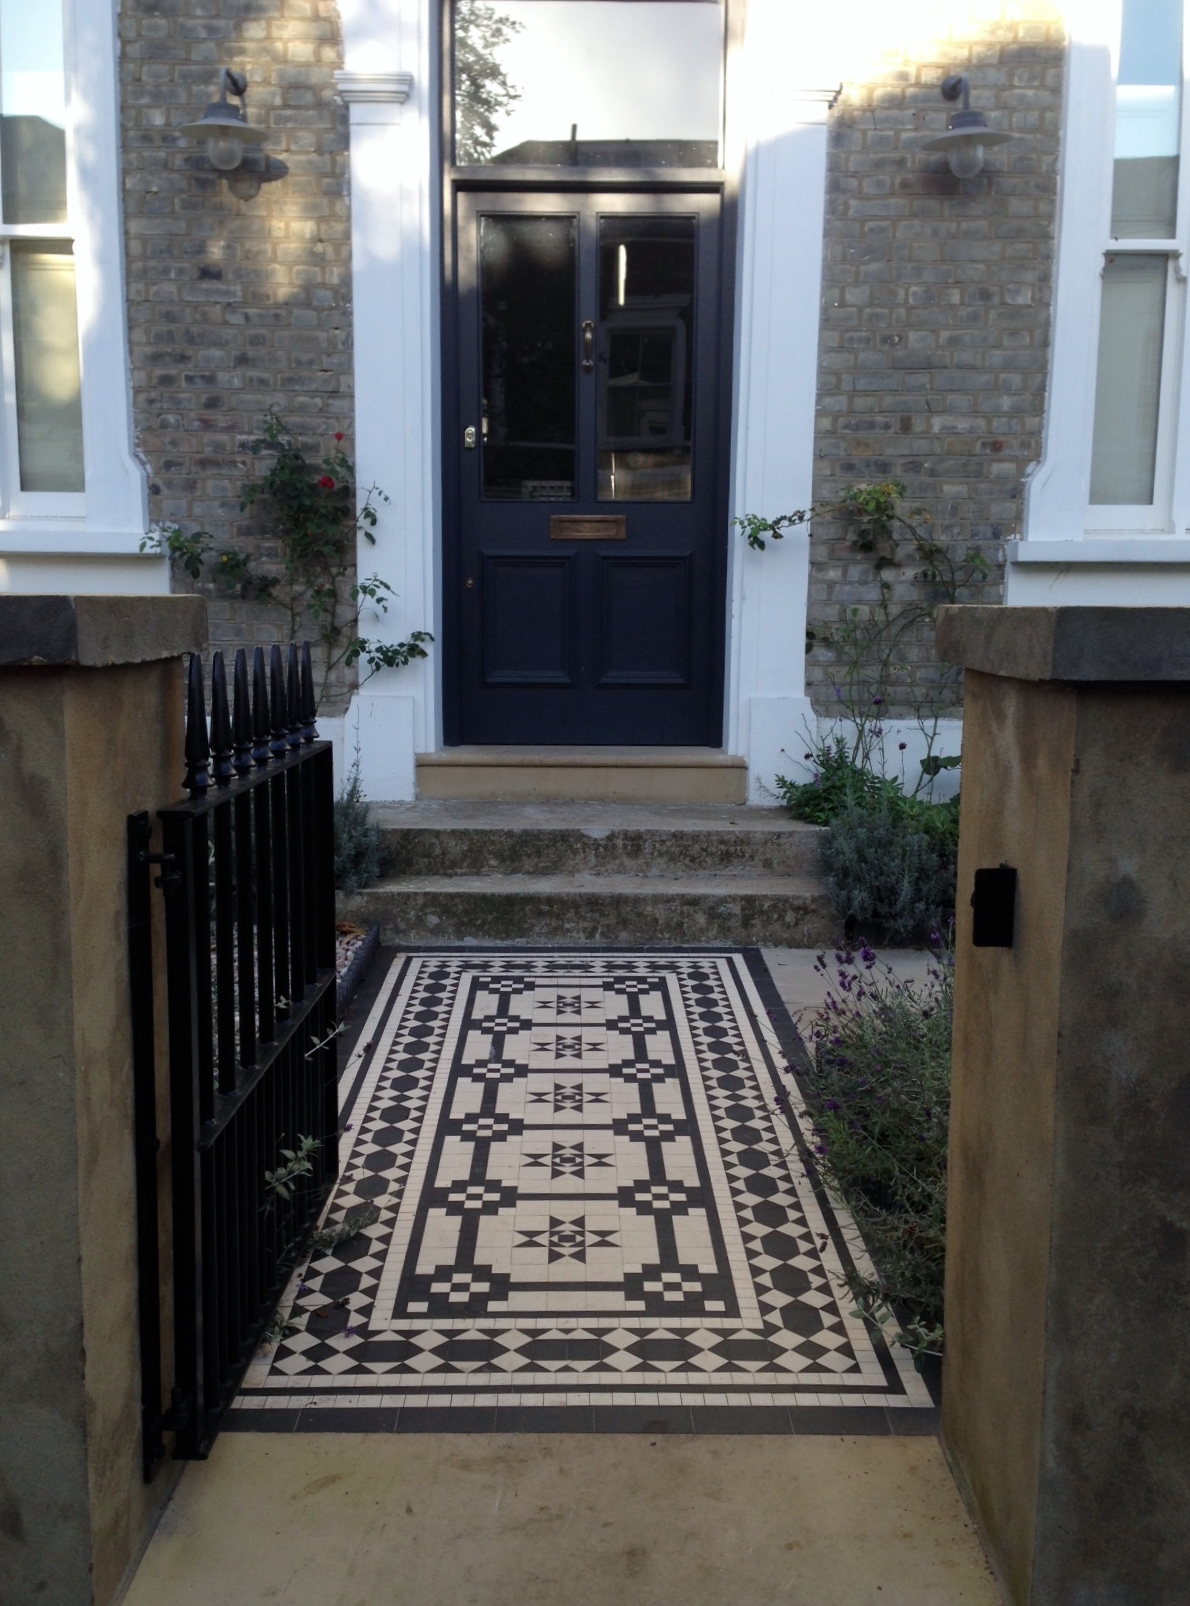 Islington Victorian mosaic tile path York stone sandstone paving wrought iron rails and gate London (34)